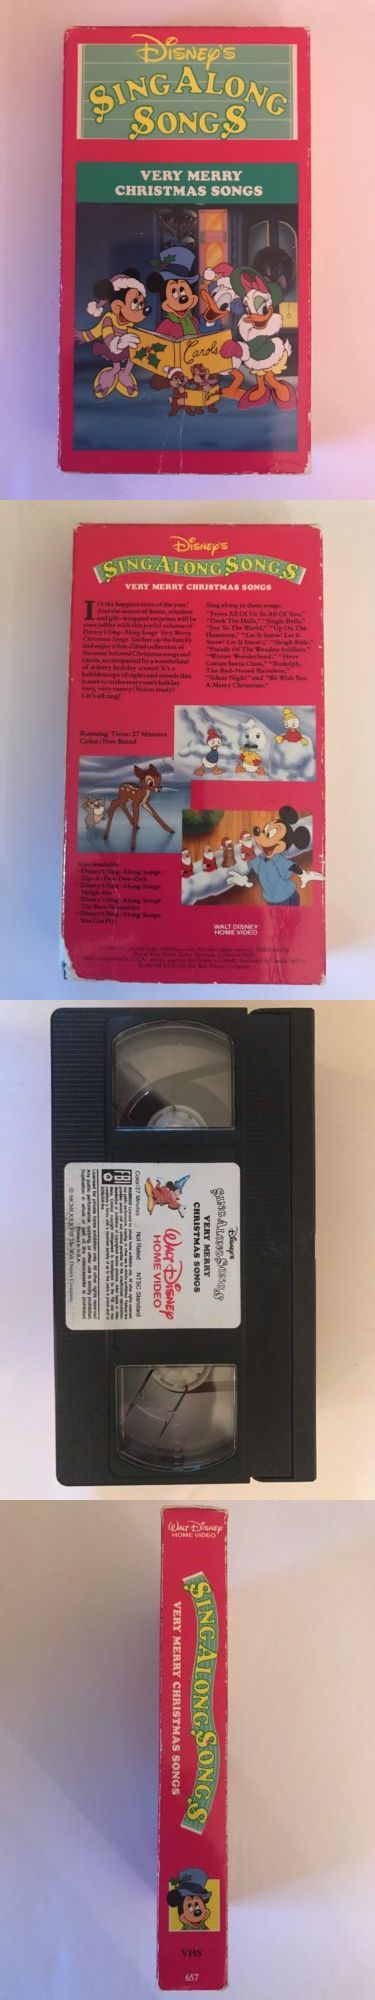 Christmas Songs And Album: Disney Sing Along Songs Very Merry Christmas Songs Vhs Movie Video BUY IT NOW ONLY: $0.99